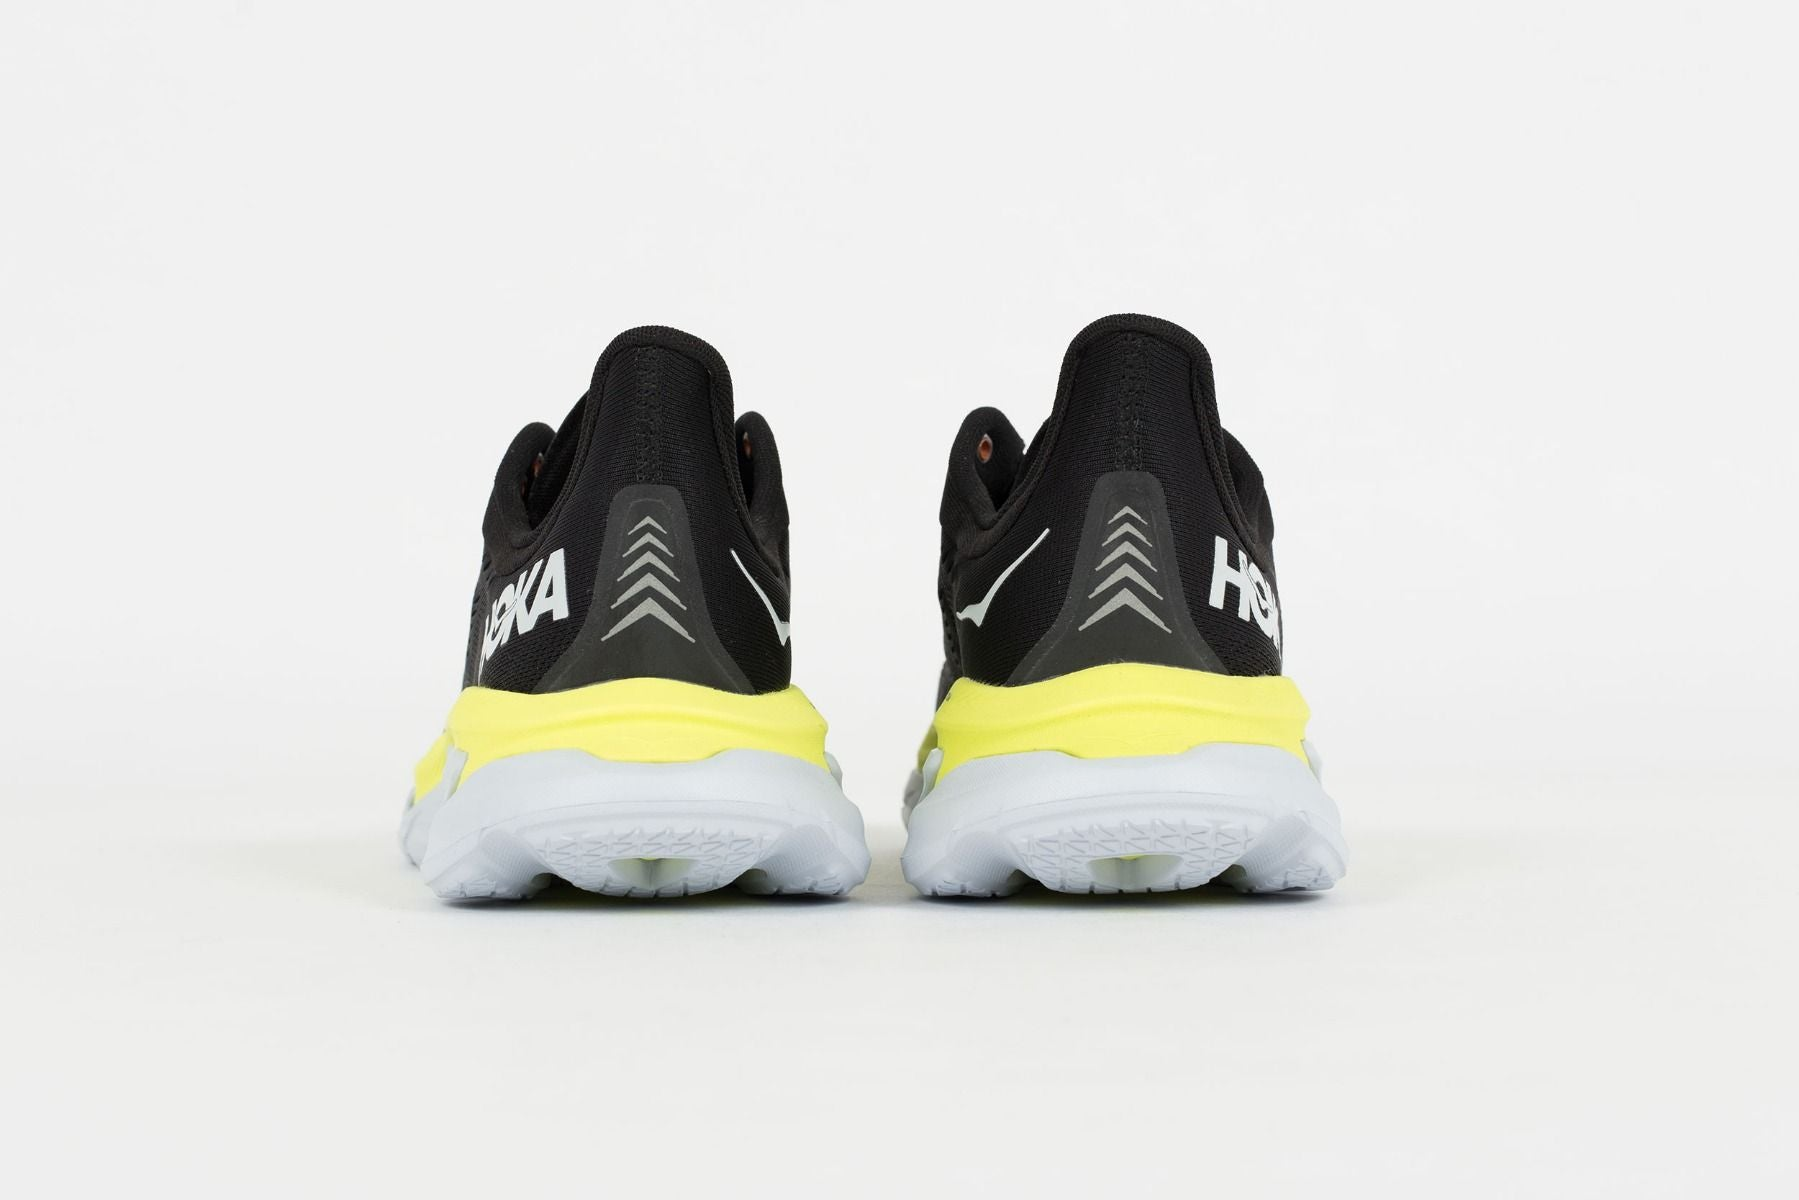 Hoka One One Clifton Edge - Anthracite/Evening Primrose #1110510-AEPR-Preorder Item-Navy Selected Shop